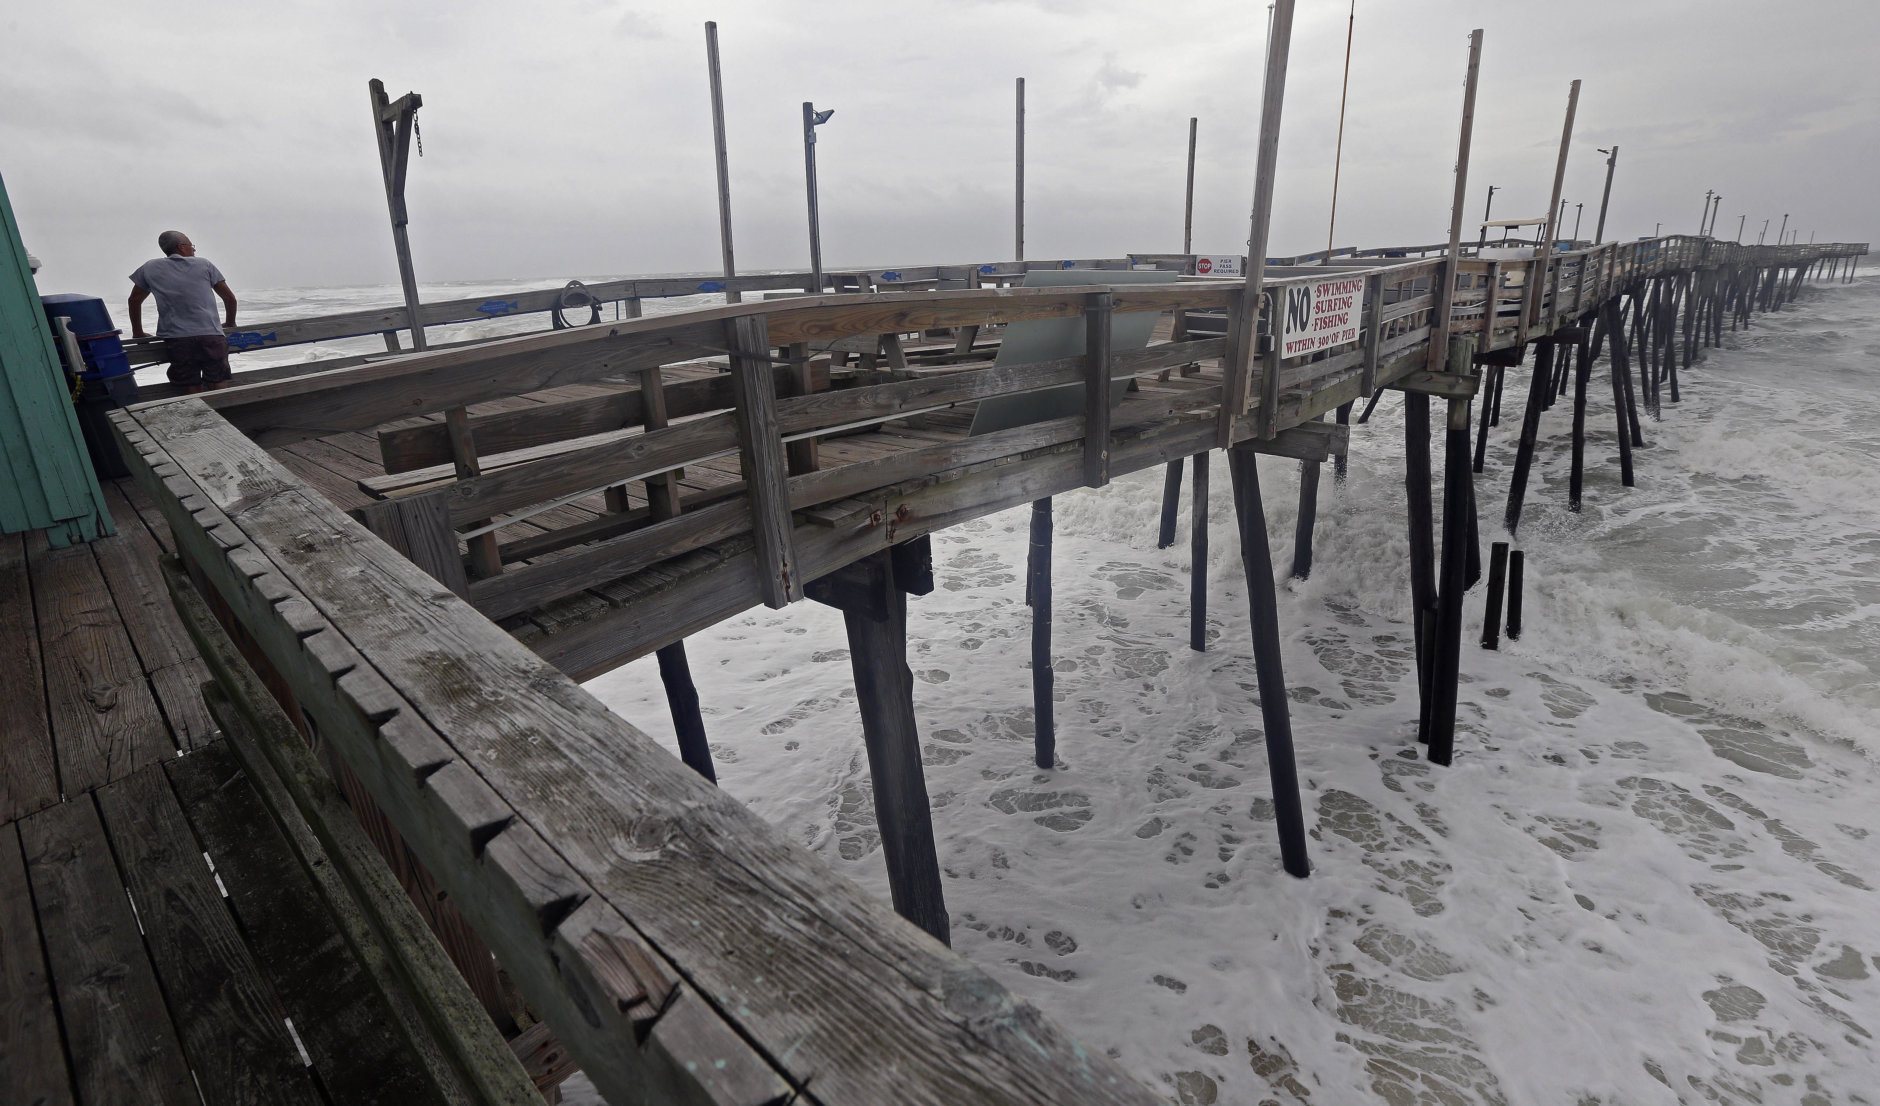 Waves crash under the Avalon Fishing Pier in Kill Devil Hills, N.C., Thursday, Sept. 13, 2018 as Hurricane Florence approaches the east coast. (AP Photo/Gerry Broome)